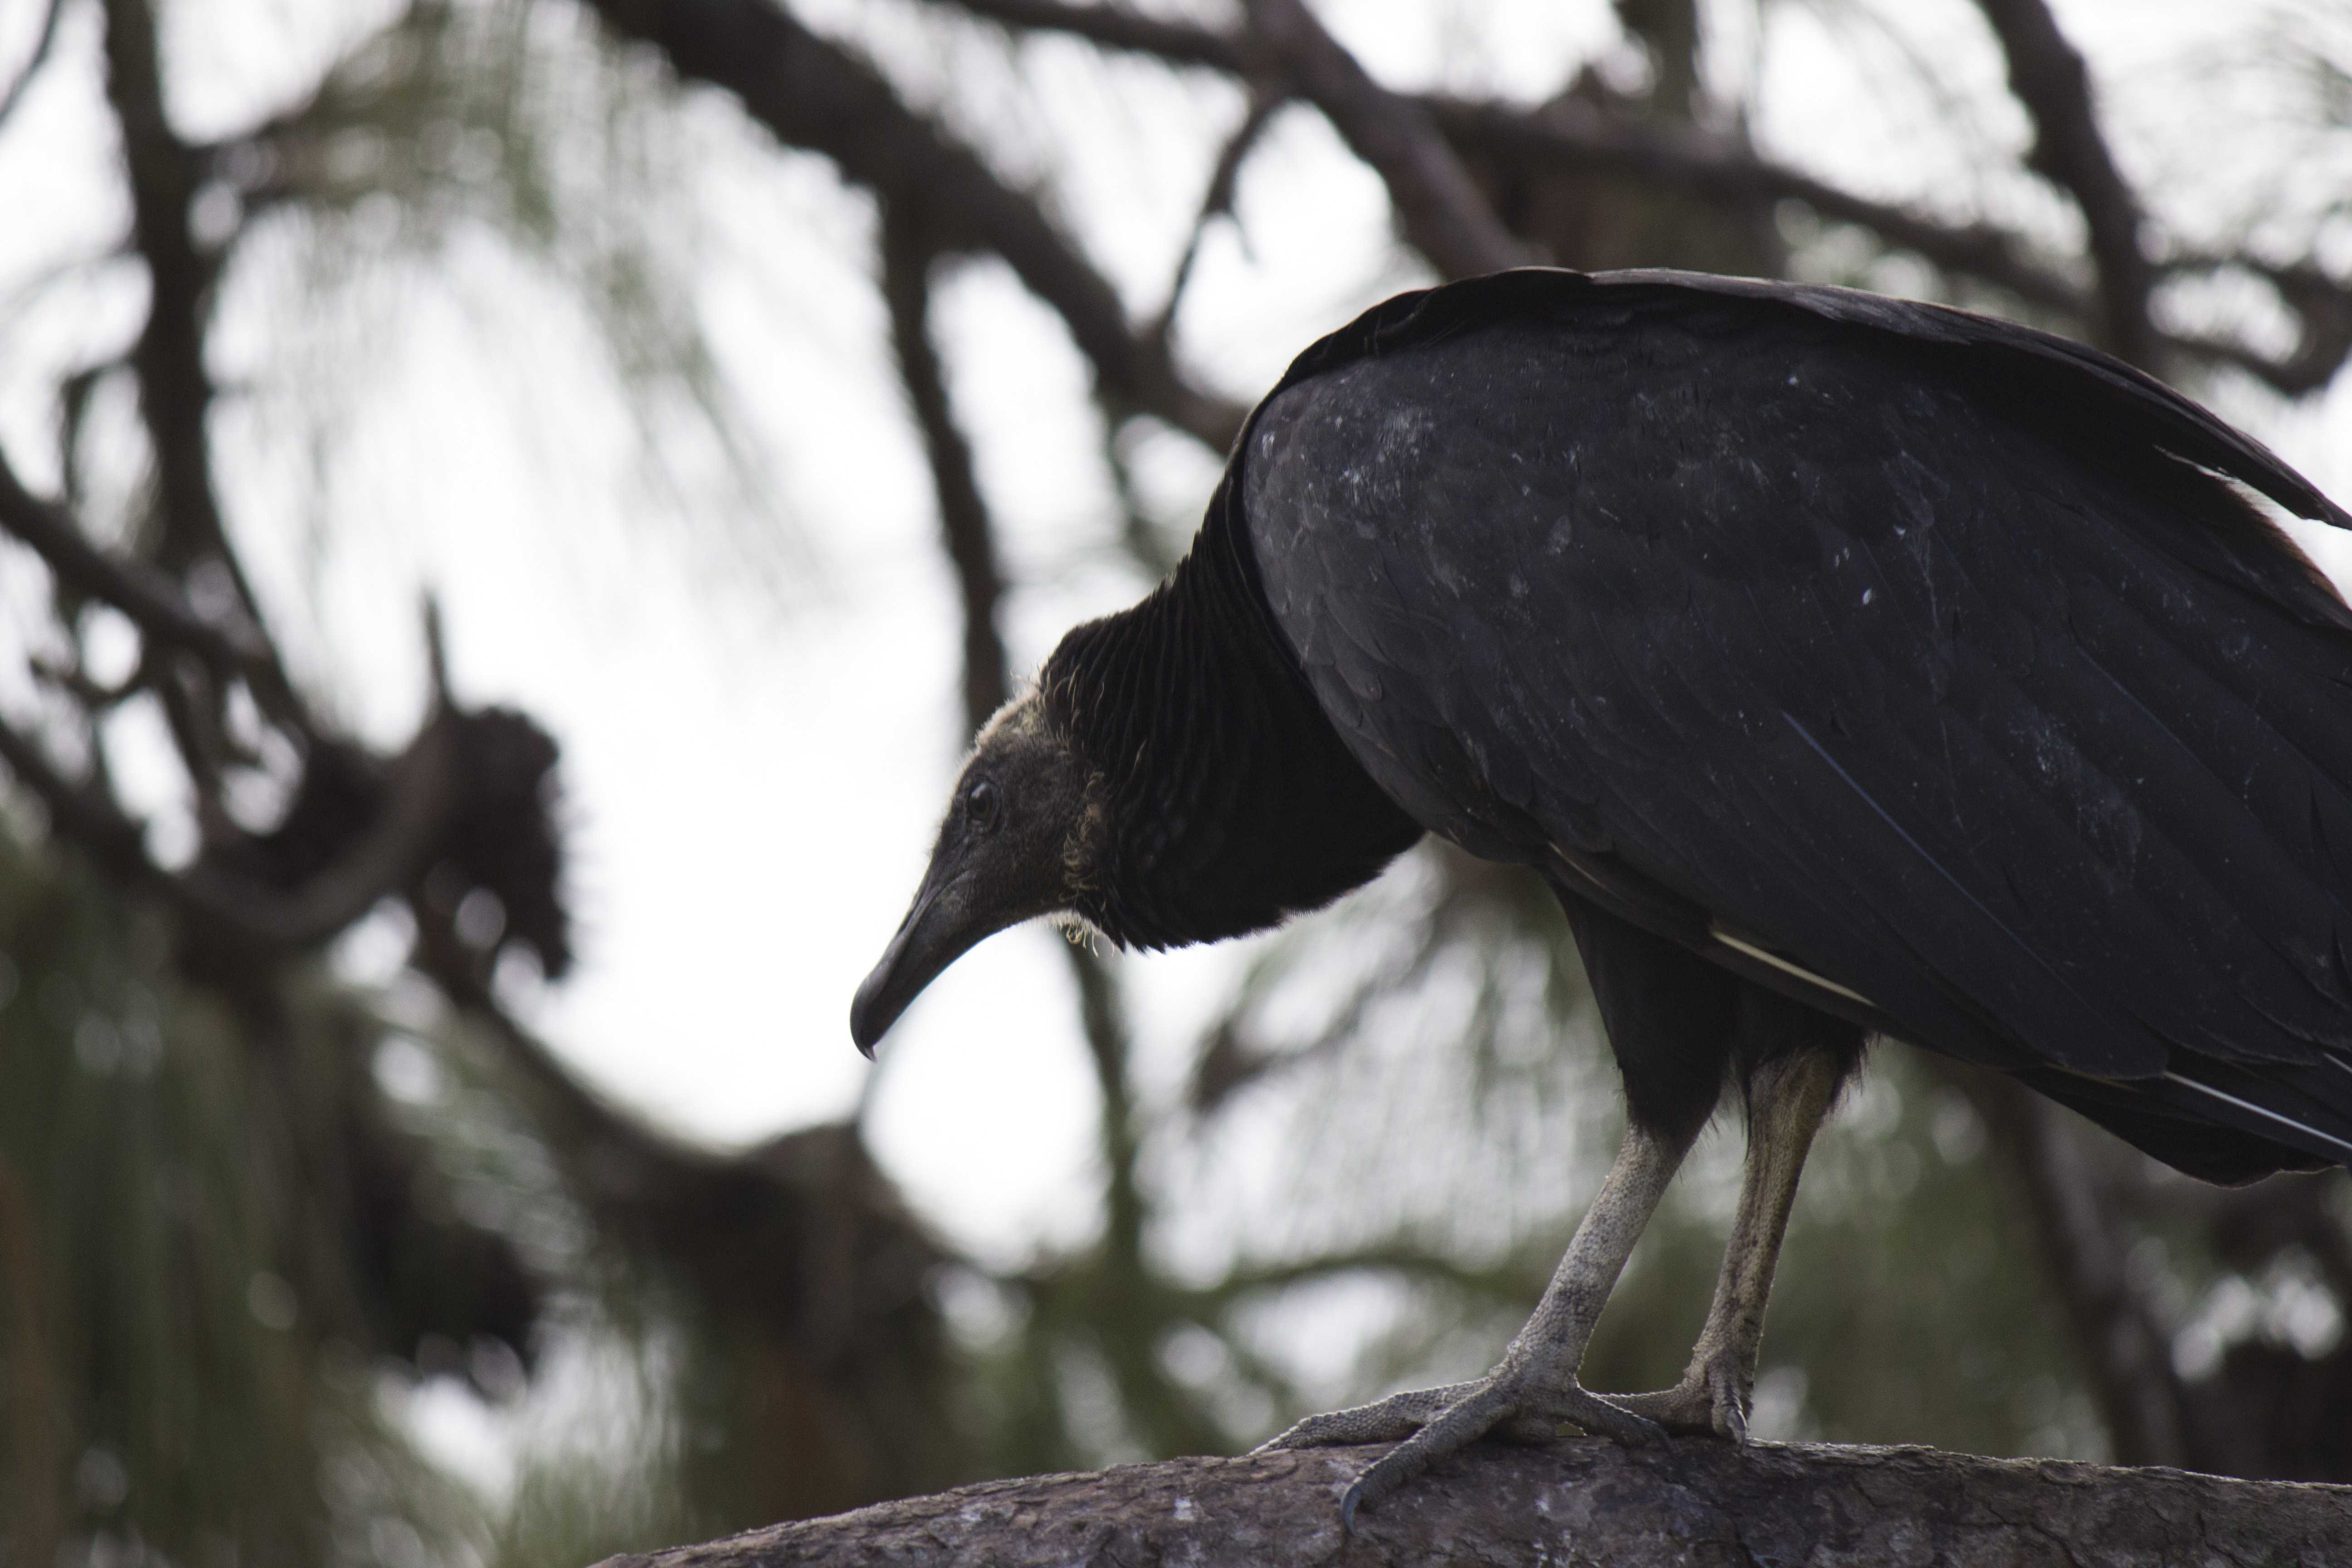 Experts say UNF's vultures on campus mean no harm